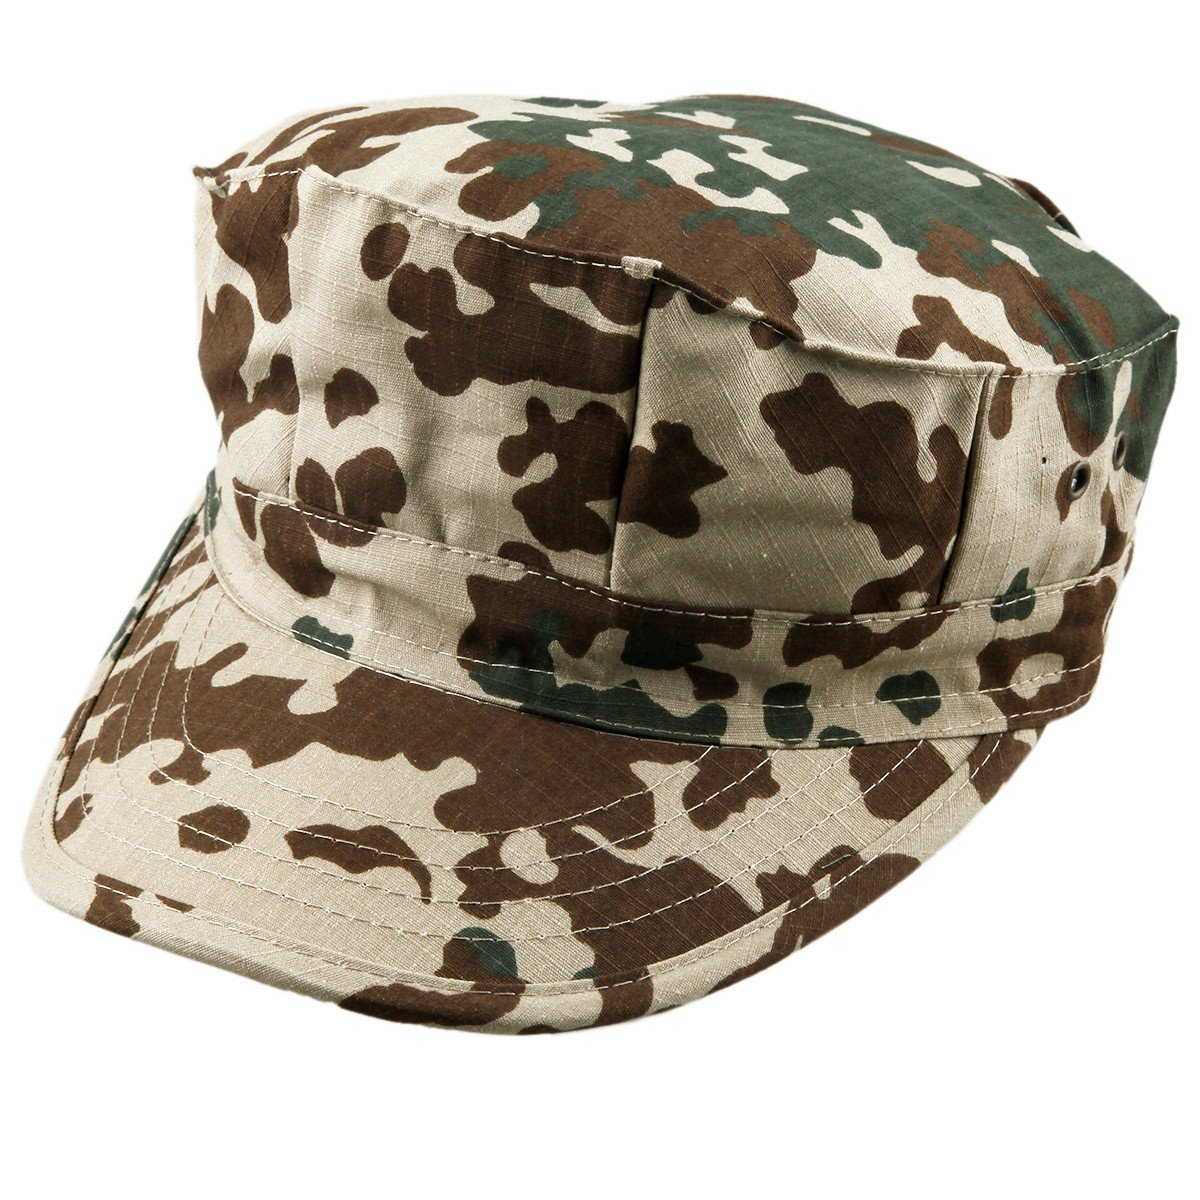 bd3bb73385847 Amazon.com   squaregarden Cadet Army Cap for Men Military Style Hats    Sports   Outdoors